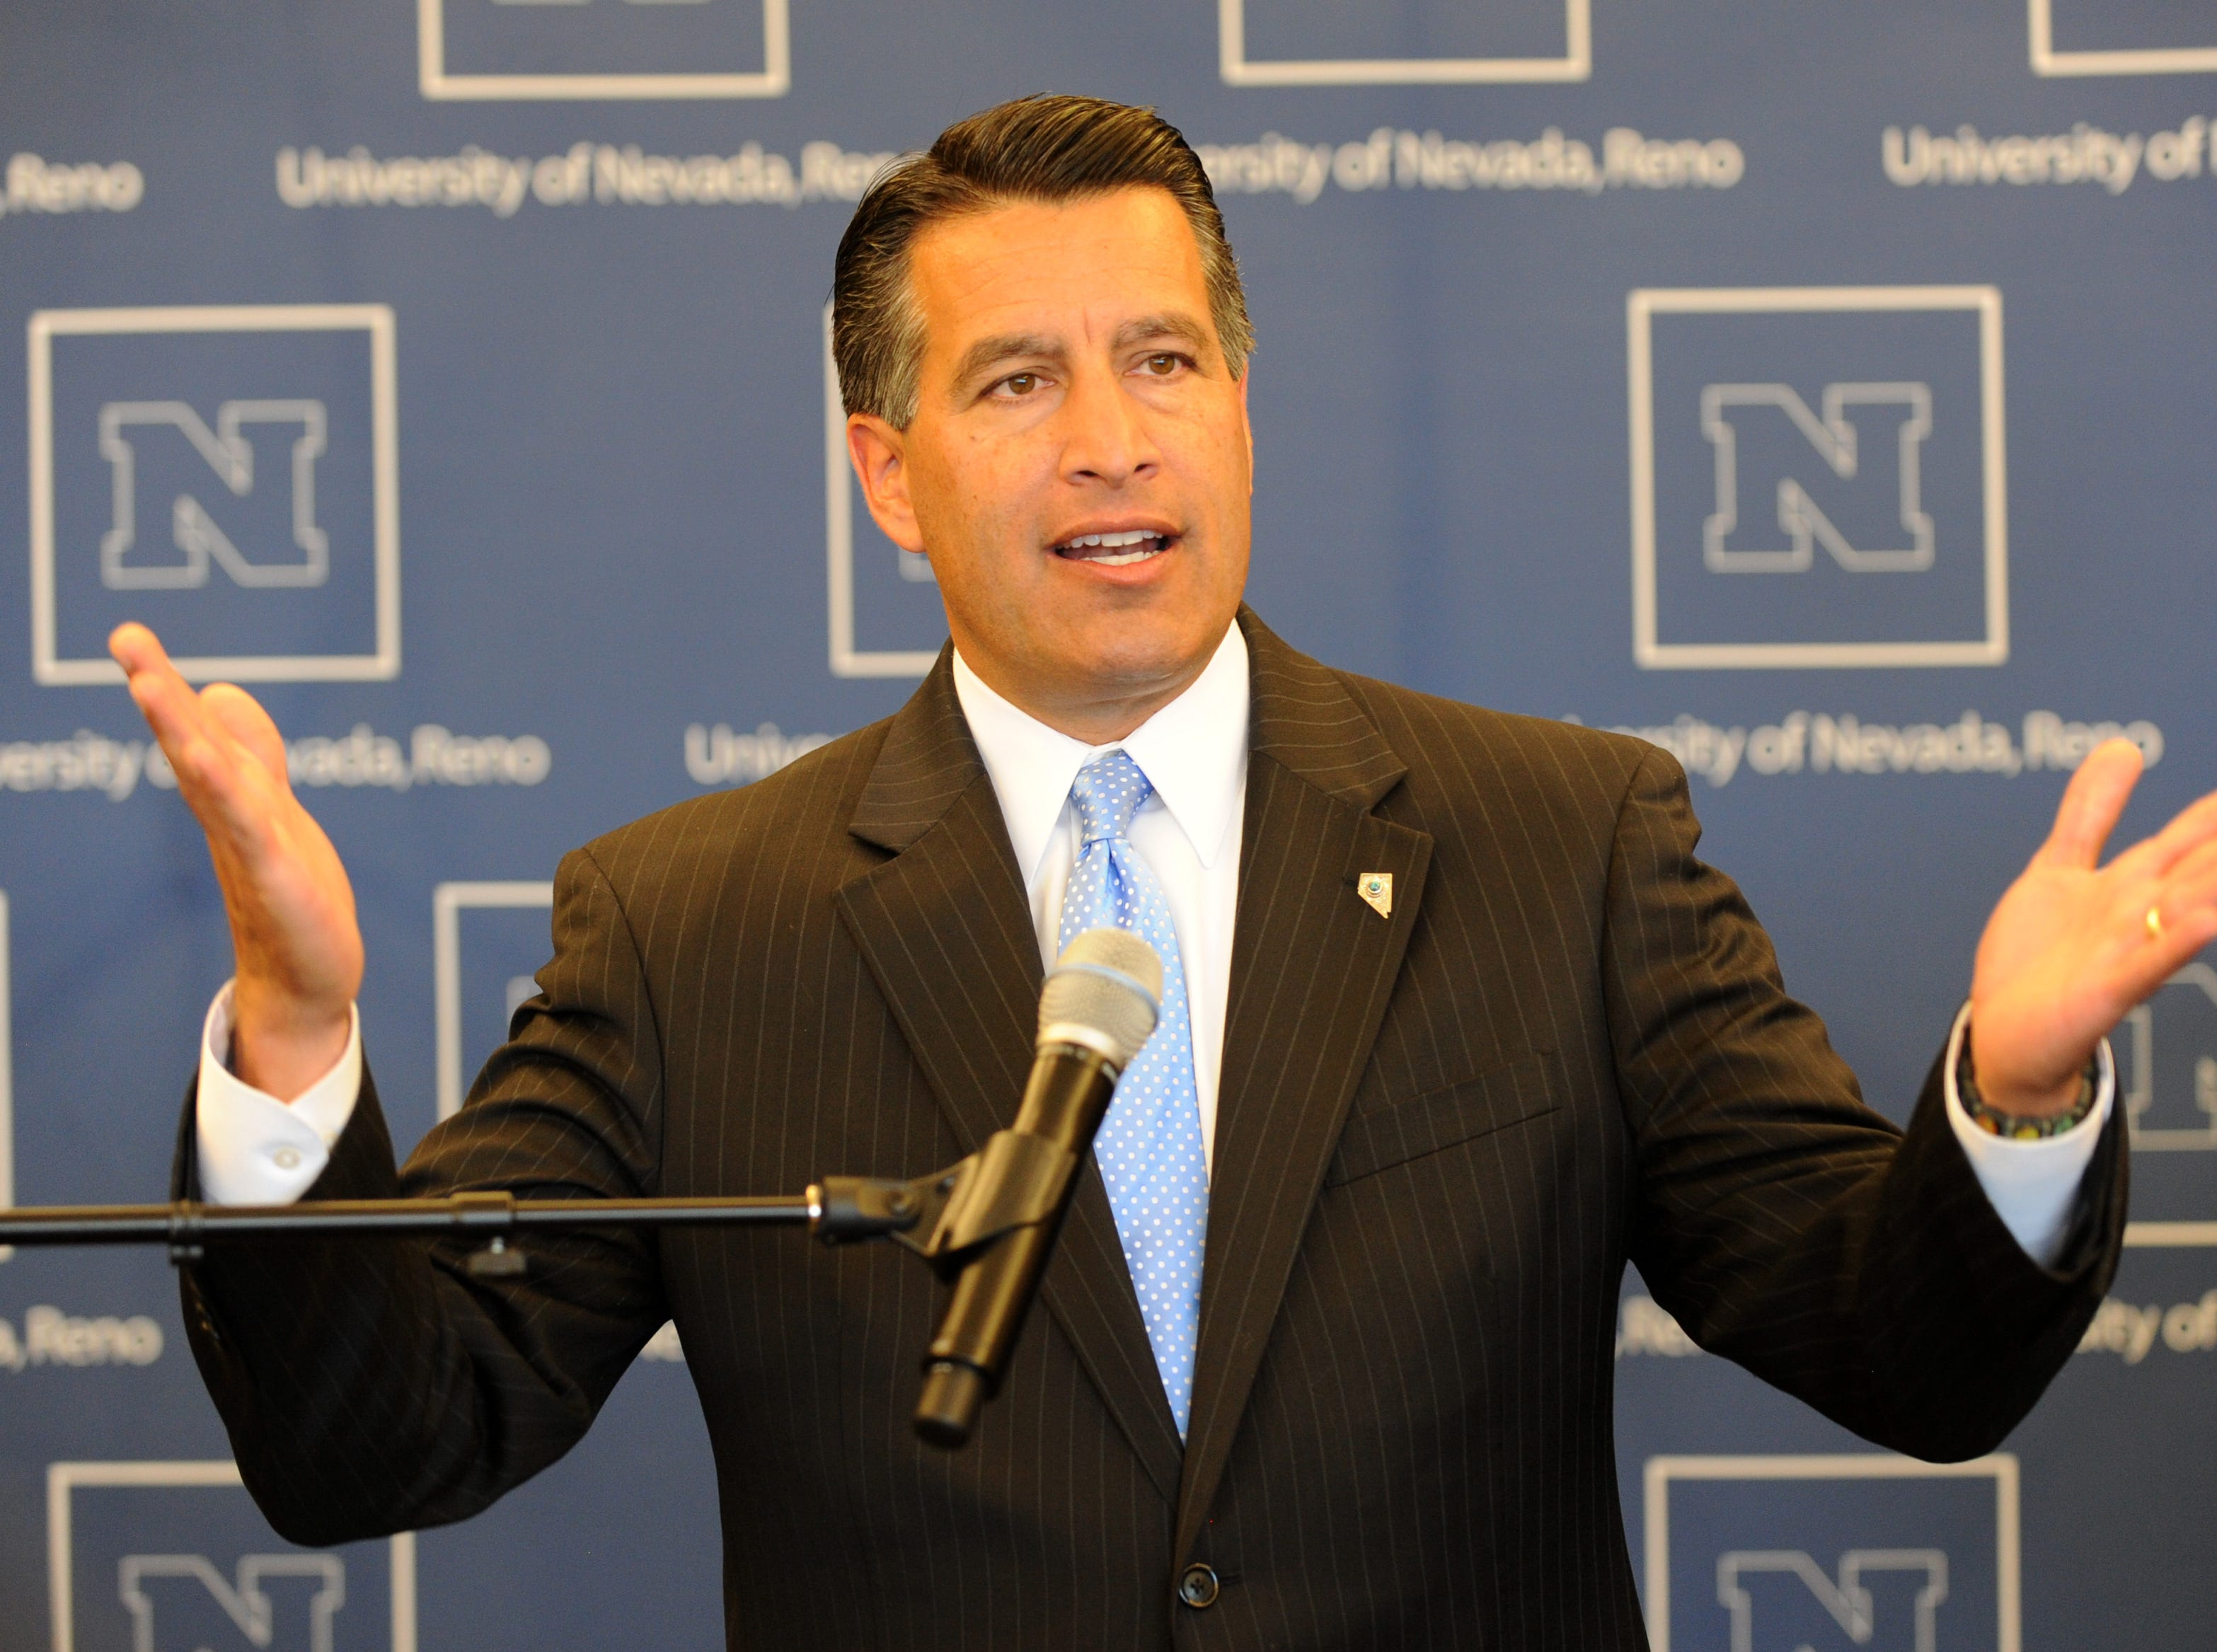 Gov. Brian Sandoval, seen here in a photo announcing the new fitness center at UNR, will likely name a new Nevada regent soon.  Photo by Tim Dunn/RGJ